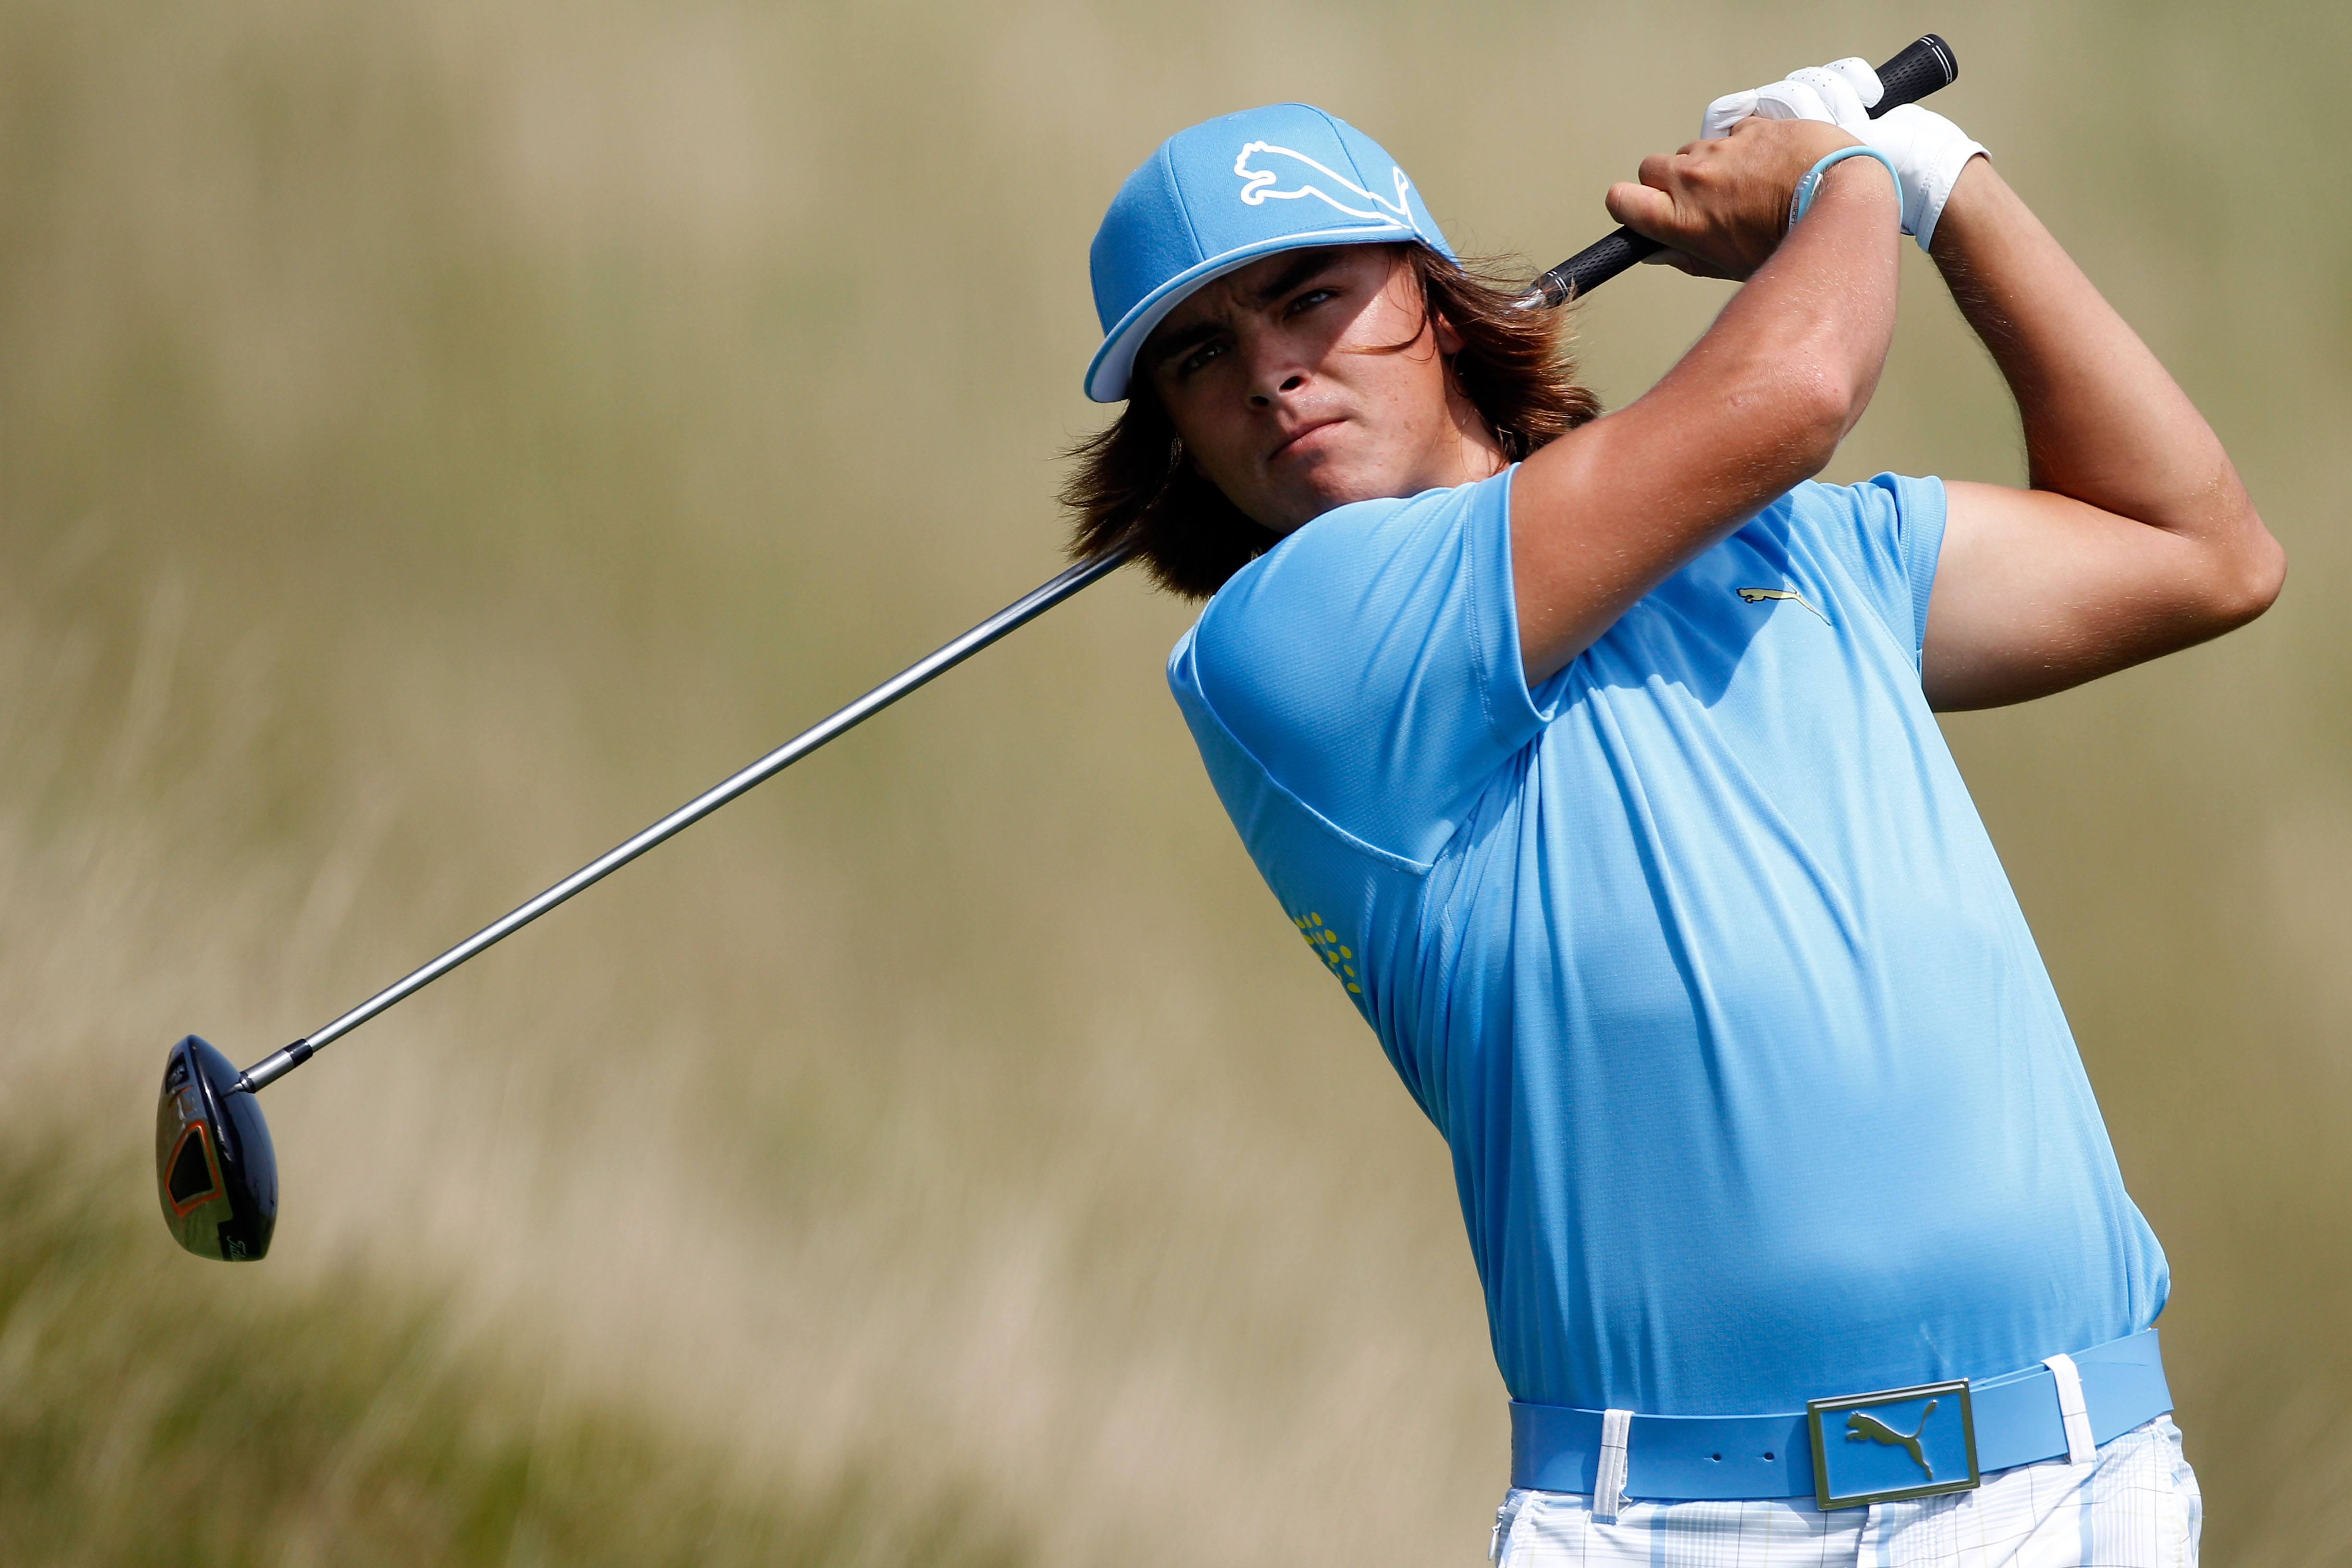 KOHLER, WI - AUGUST 12:  Rickie Fowler watches his tee shot on the 14th hole during the first round of the 92nd PGA Championship on the Straits Course at Whistling Straits on August 12, 2010 in Kohler, Wisconsin.  (Photo by Chris Graythen/Getty Images)